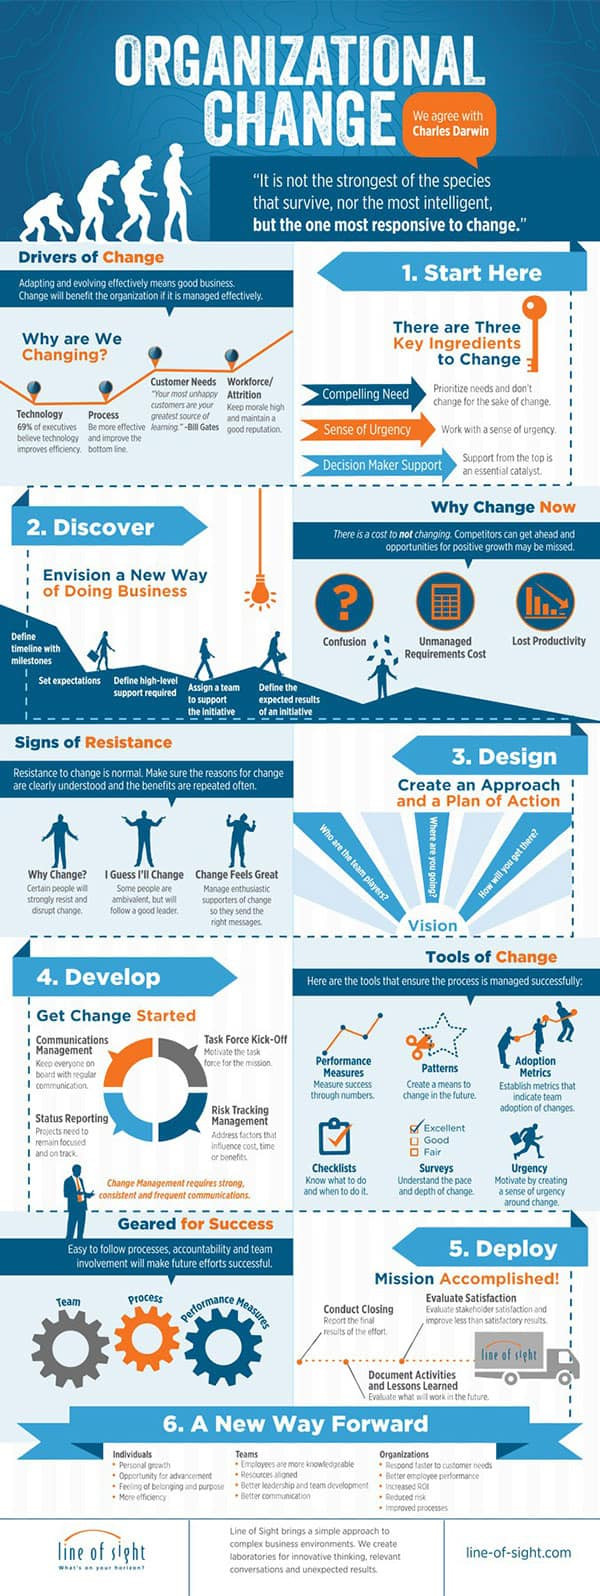 Organizational Change Infographic